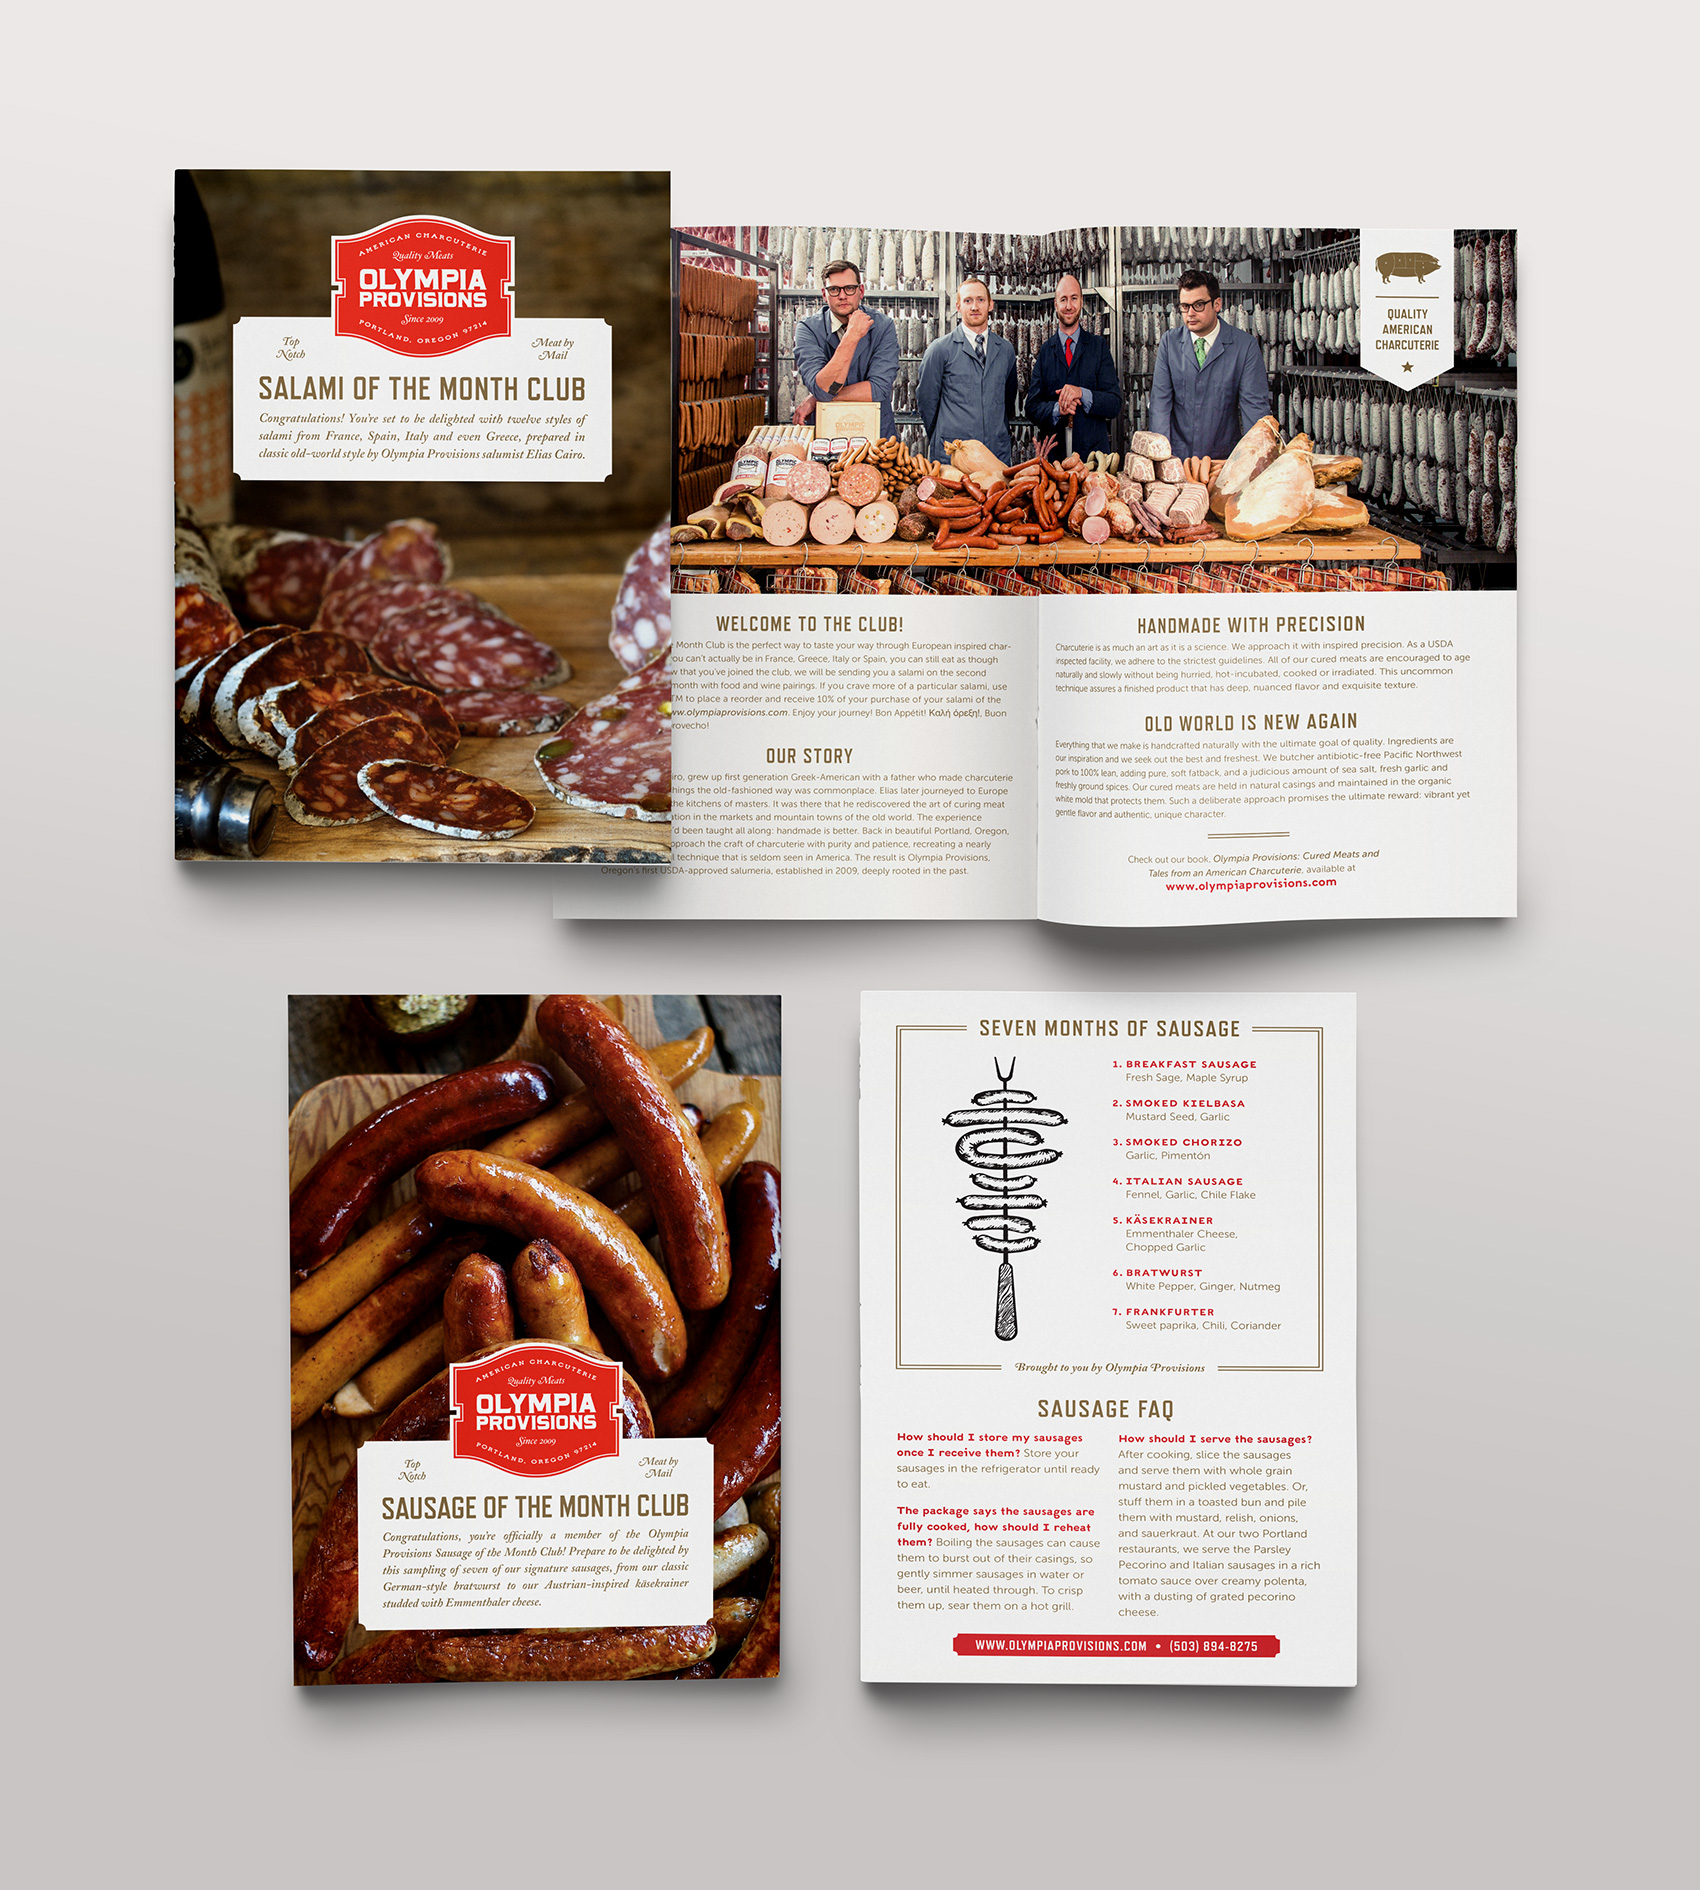 collateral inserts for Olympia Provisions' club of the months - salami of the month, sausage of the month, pate of the month and pickle of the month